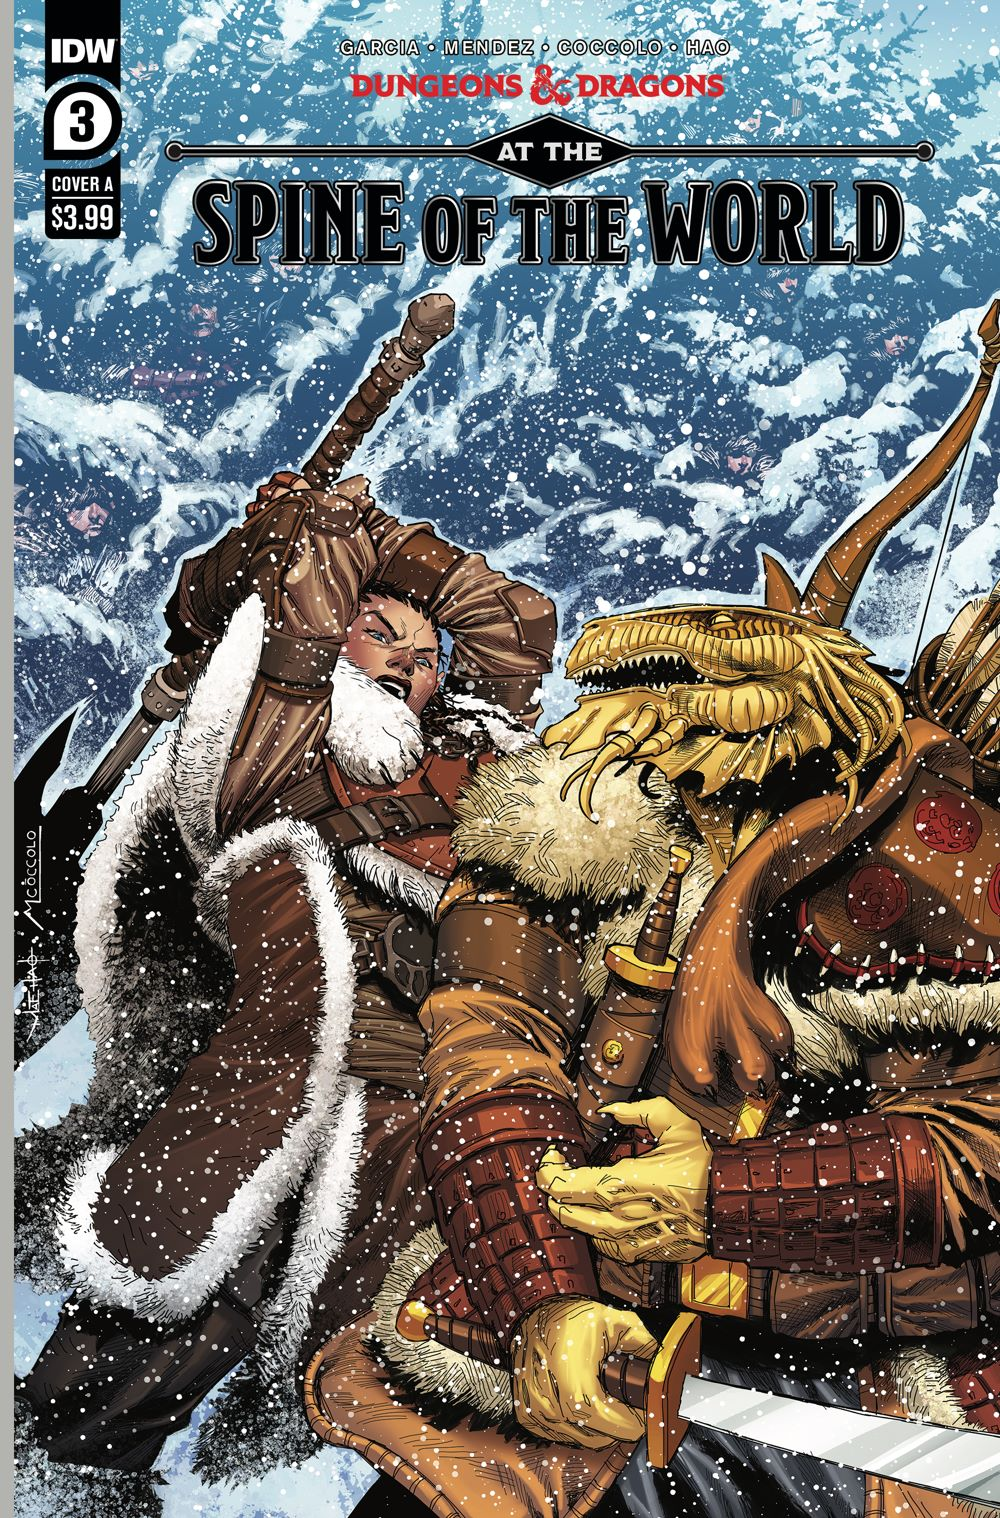 DD_ATSOTW03-coverA ComicList: IDW Publishing New Releases for 01/06/2021